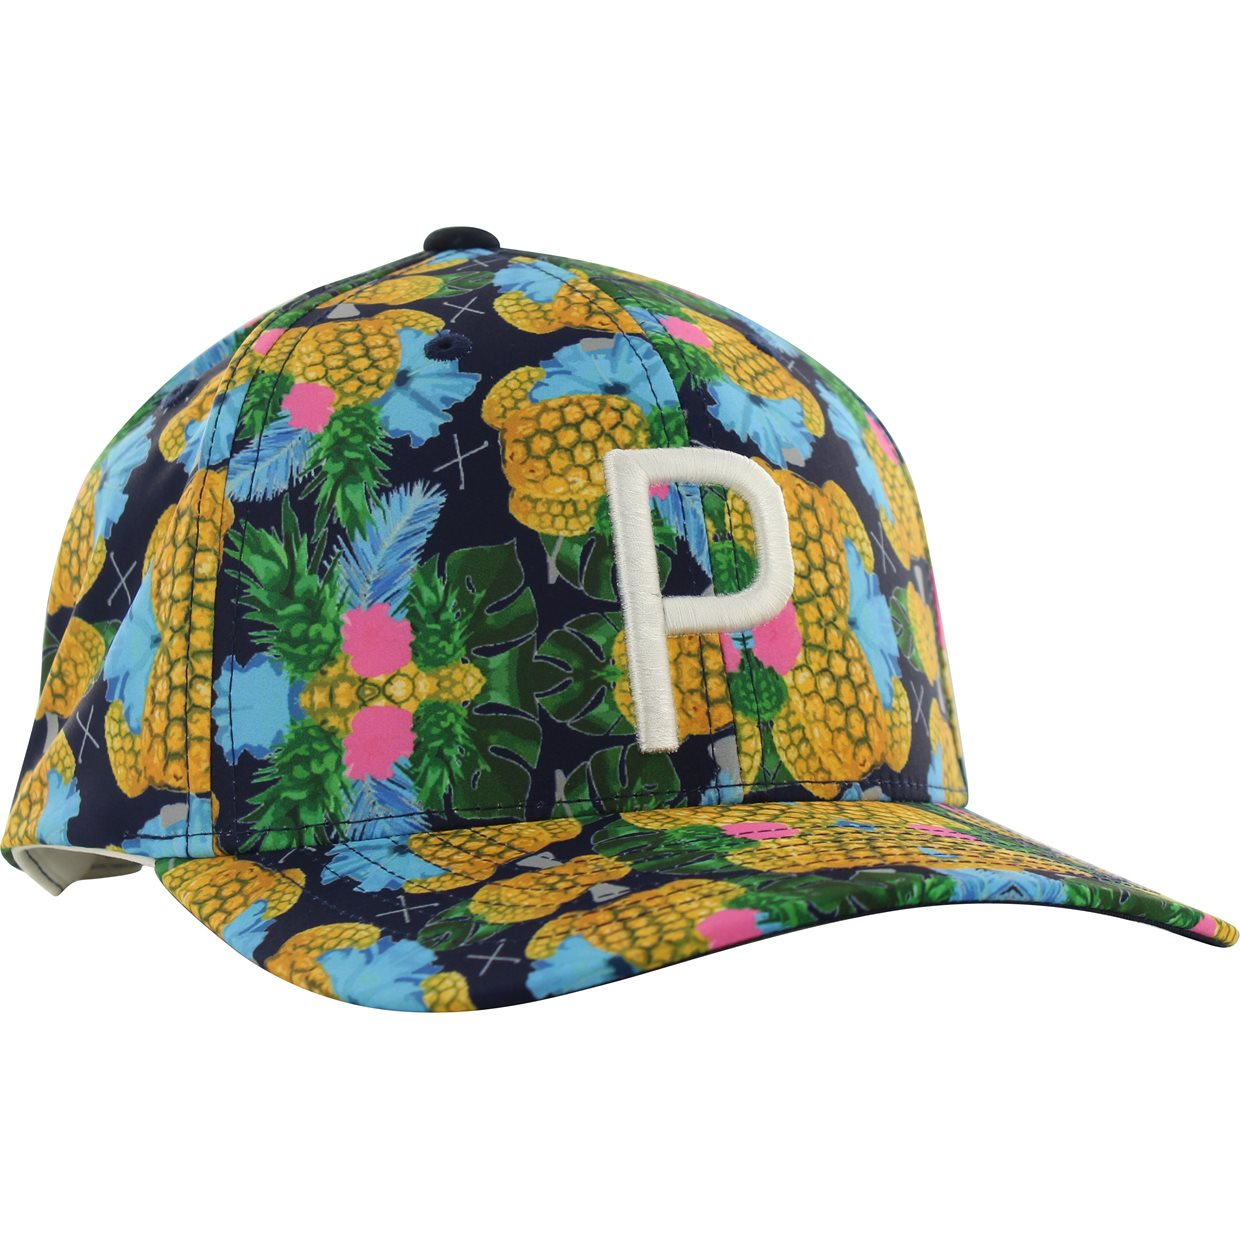 on sale 2f511 3acdf Puma Limited Edition Pineapple P 110 Snapback Headwear in Peacoat Mfr.  Close-Out